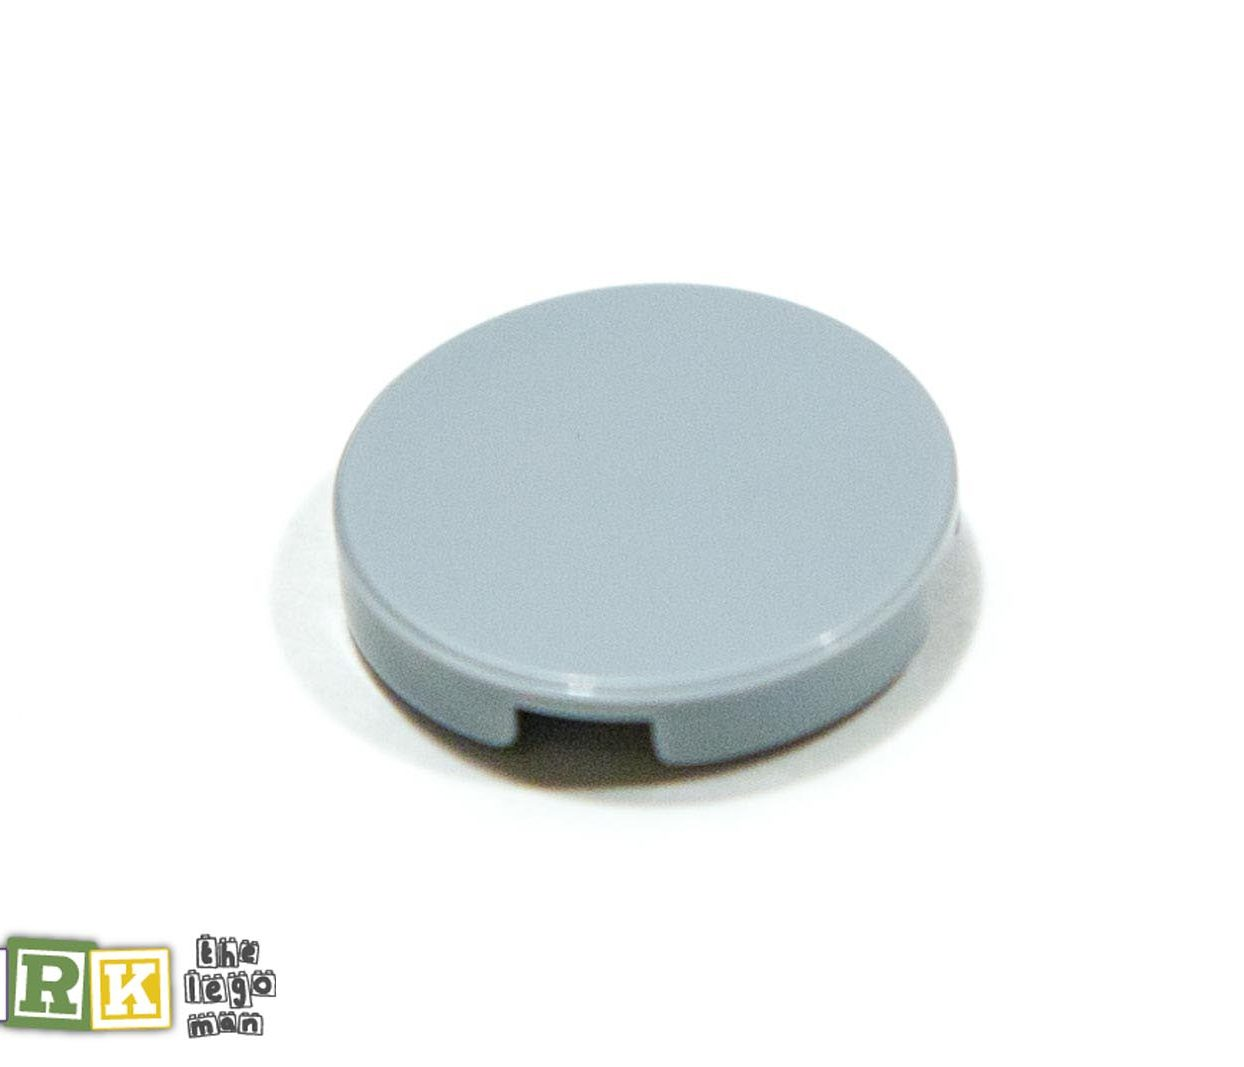 Lego 6052200 14769 1x Light Blueish Grey Md Stone Medium Standard Grey 2x2 Round Flat Tile